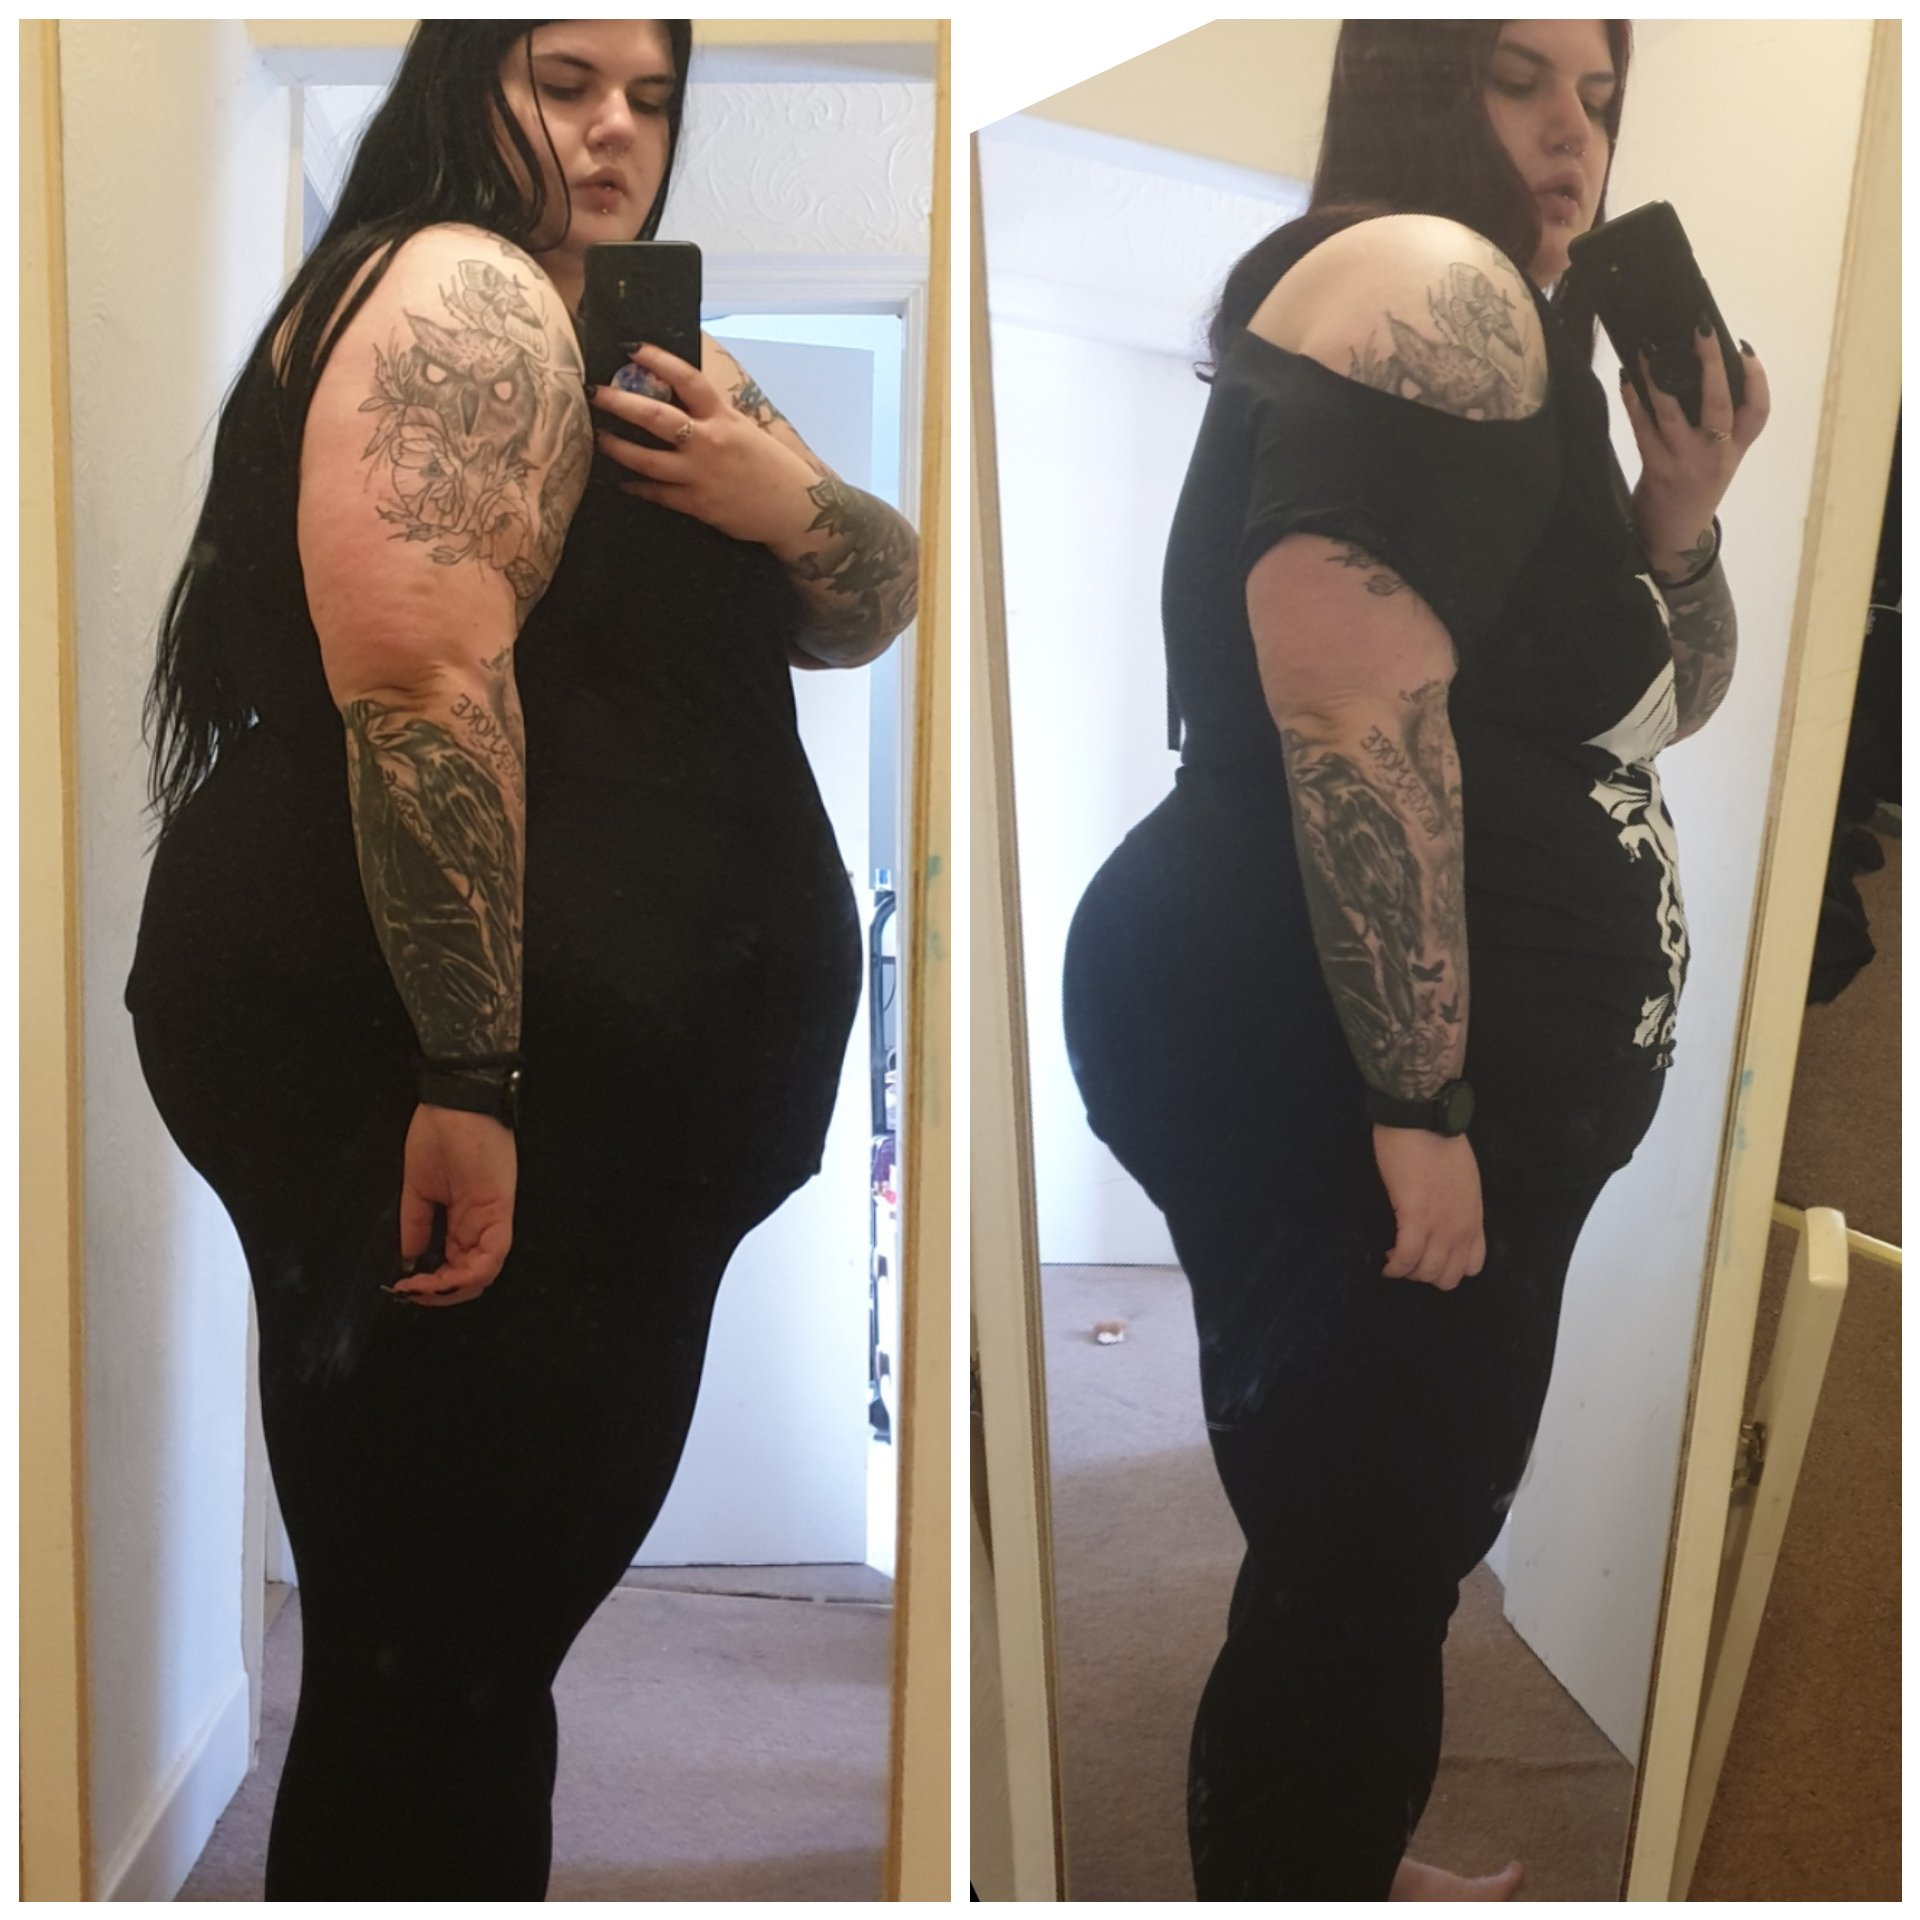 5 feet 10 Female 36 lbs Fat Loss Before and After 355 lbs to 319 lbs